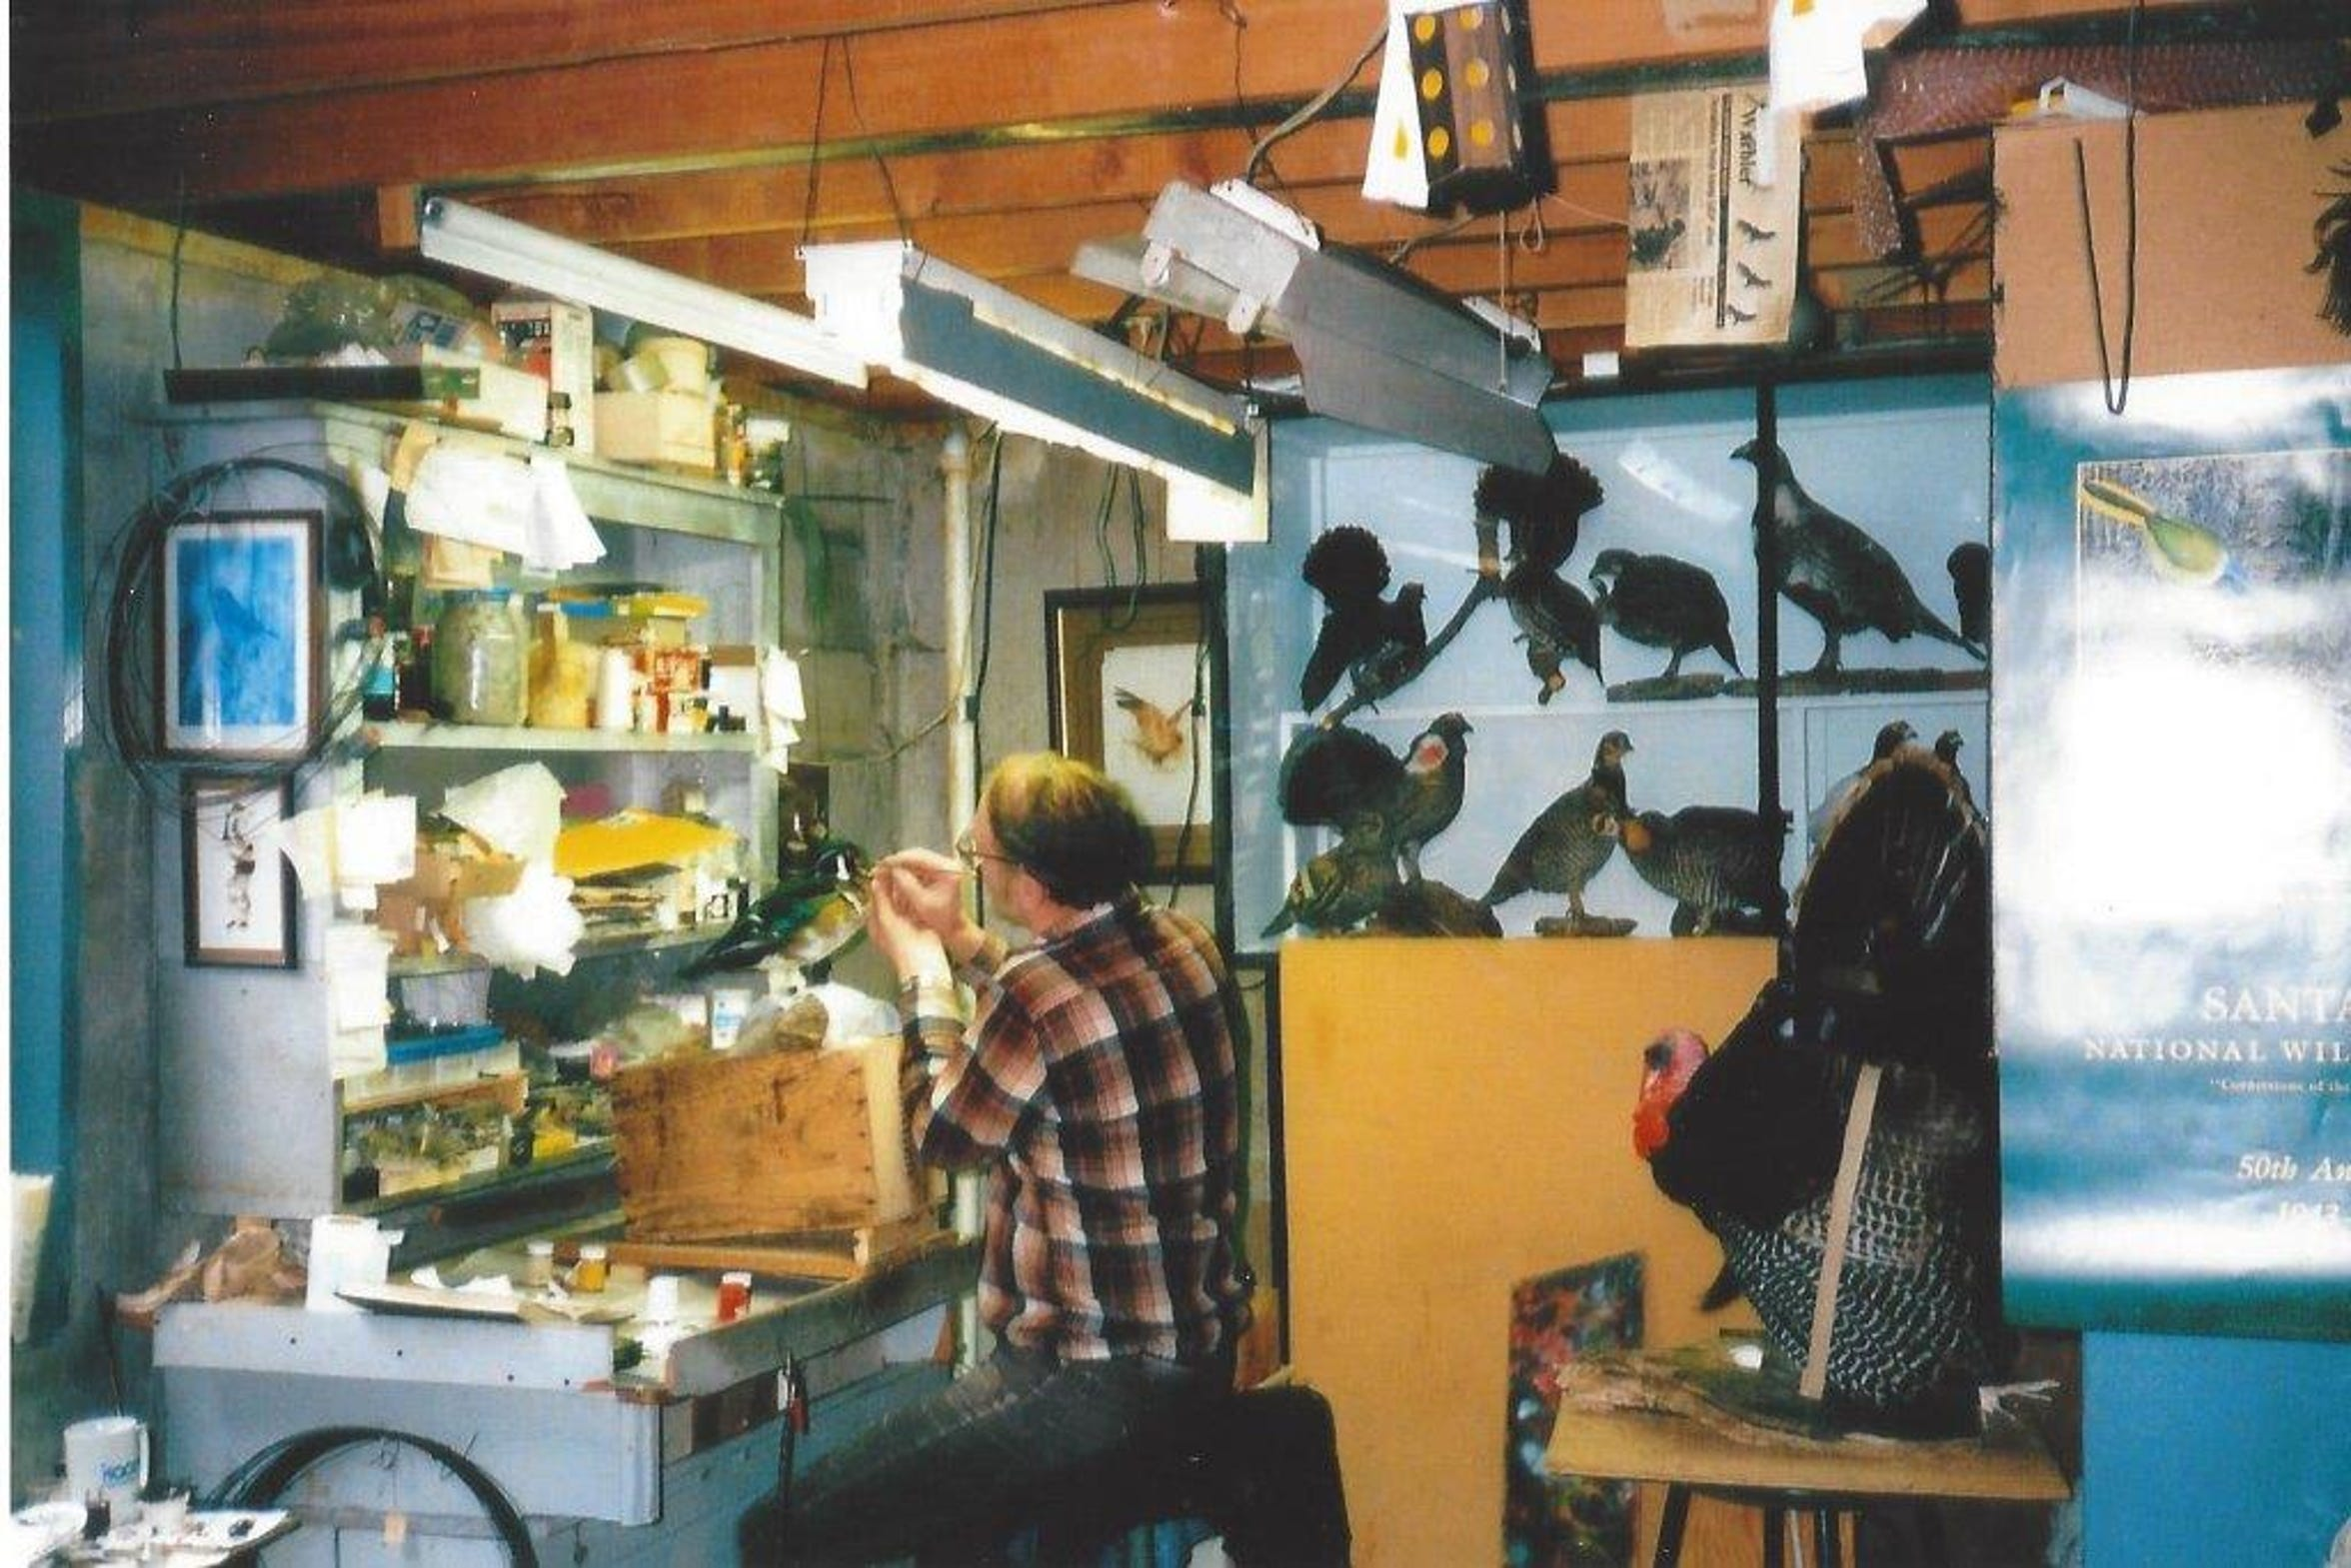 Don Bowman is regarded as one of the top 10 bird taxidermist in North America.